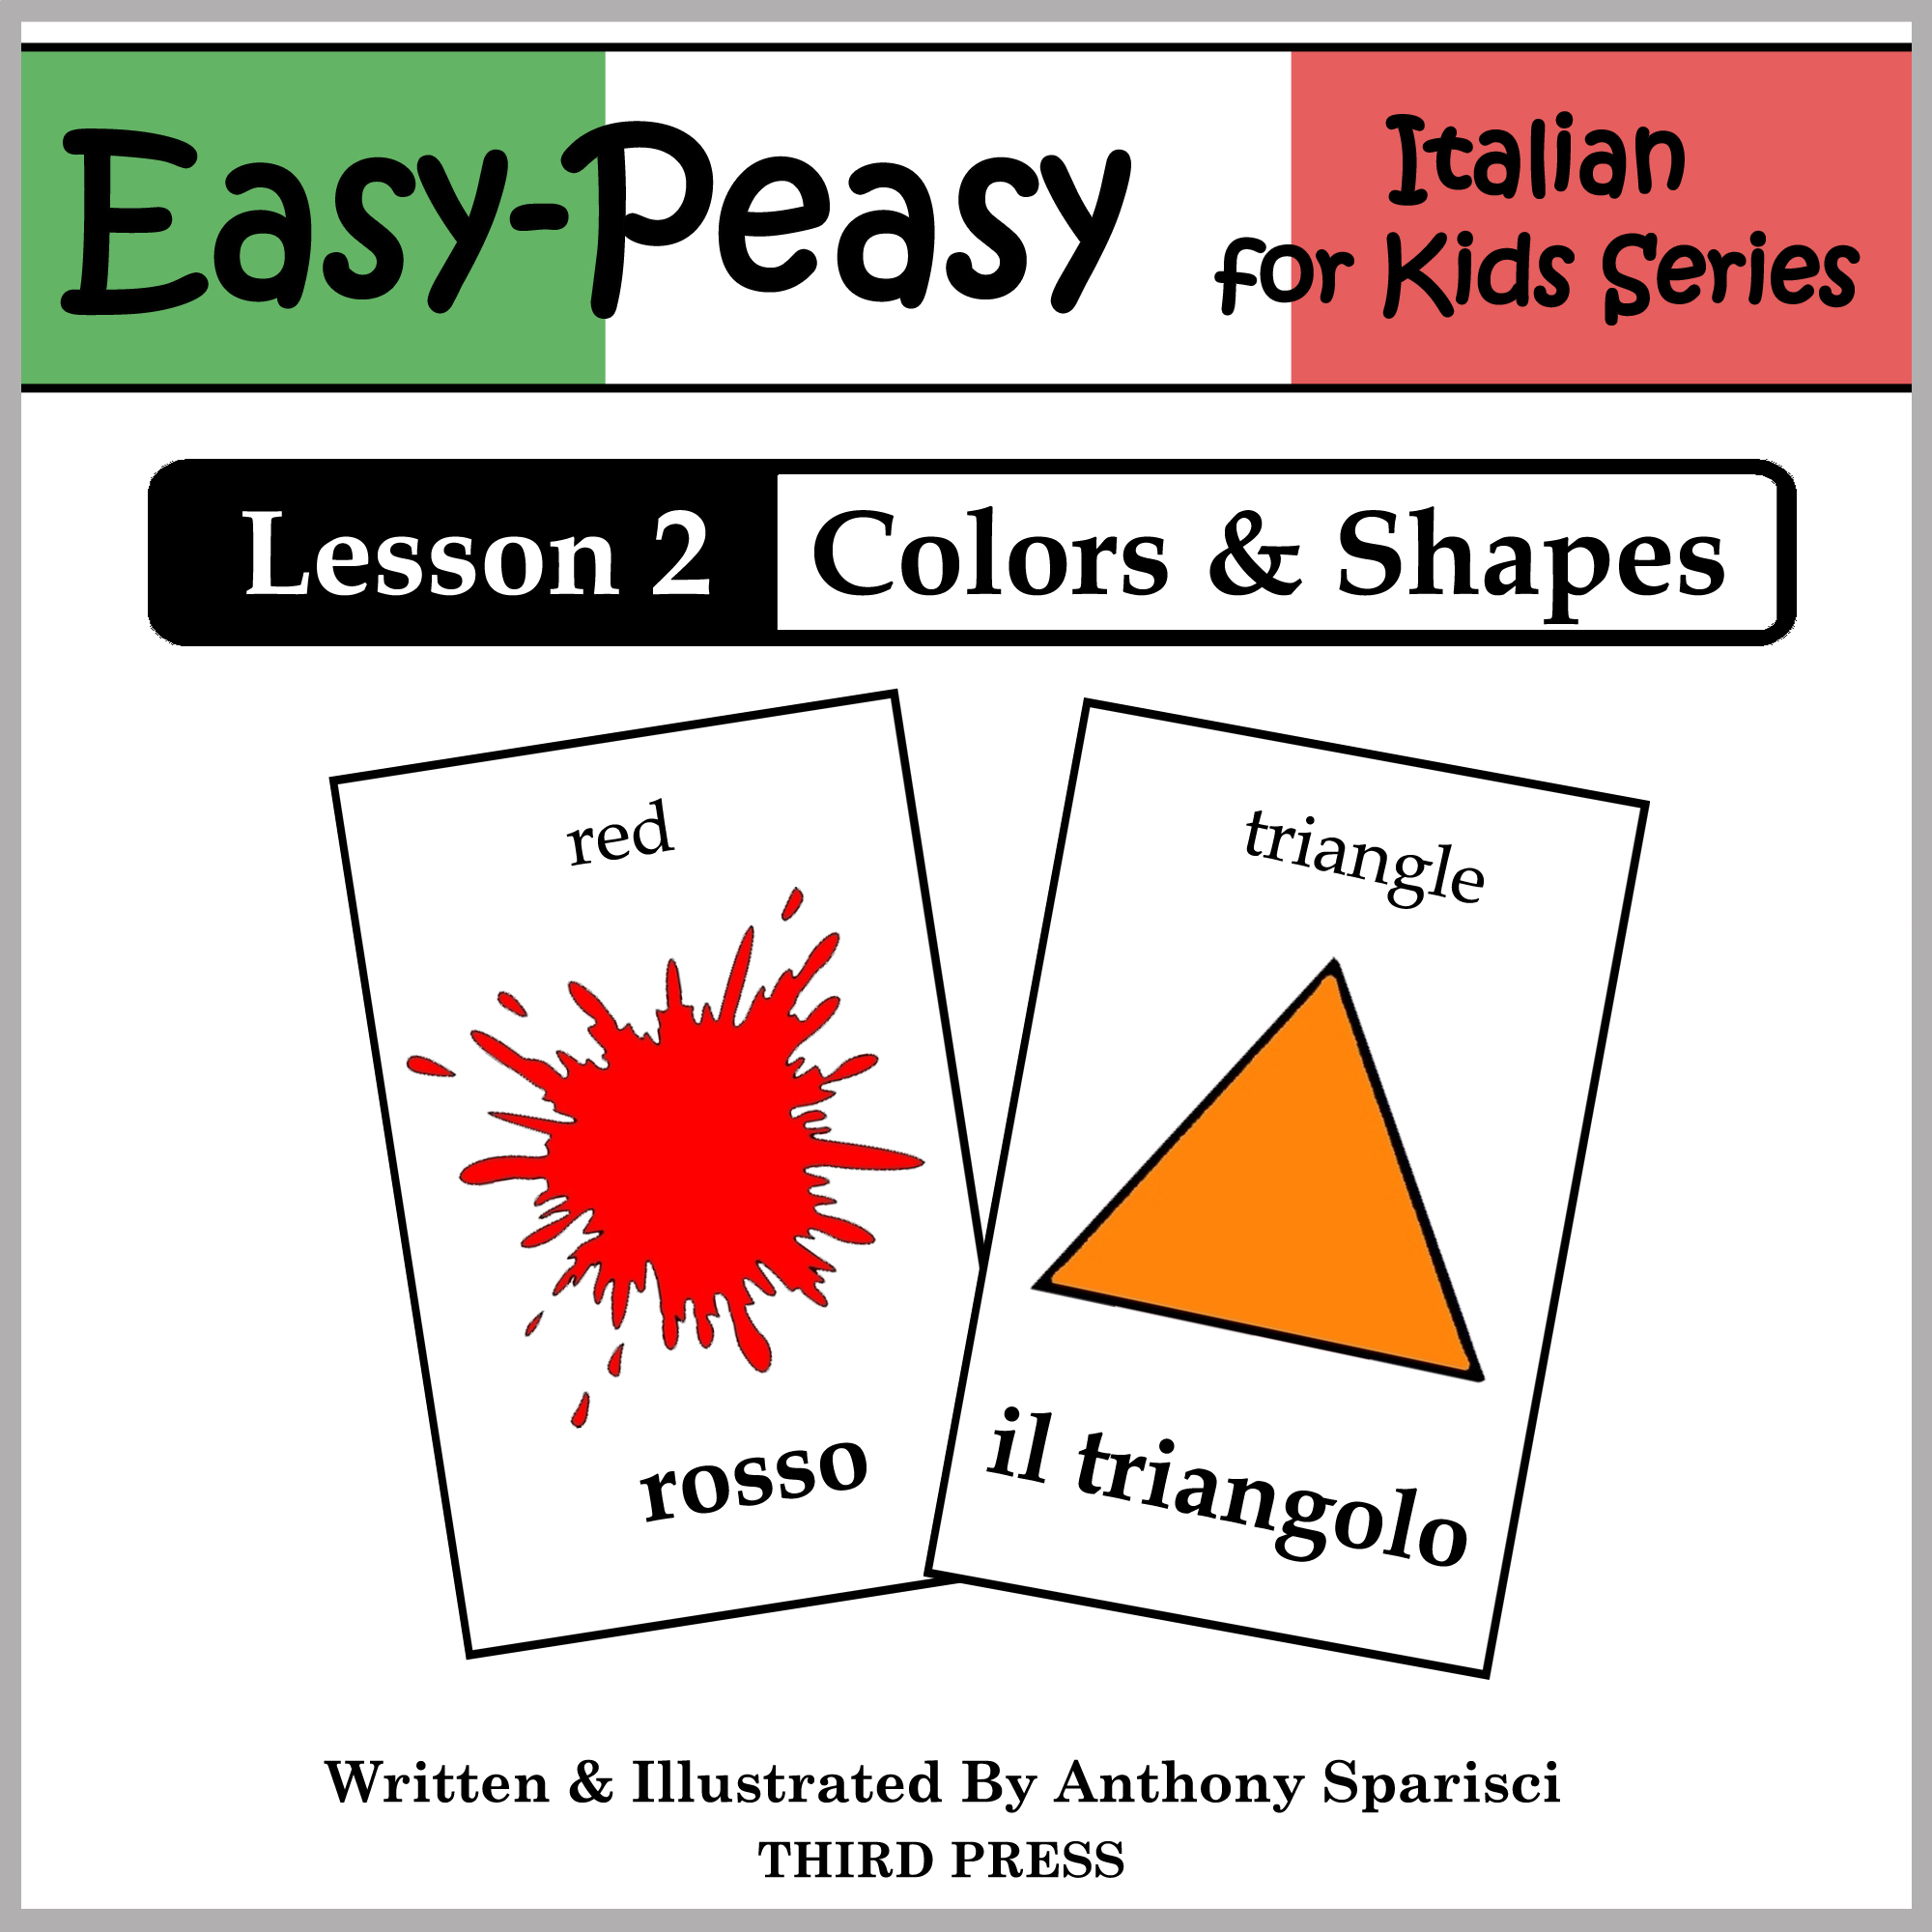 Italian Lesson 2: Colors & Shapes